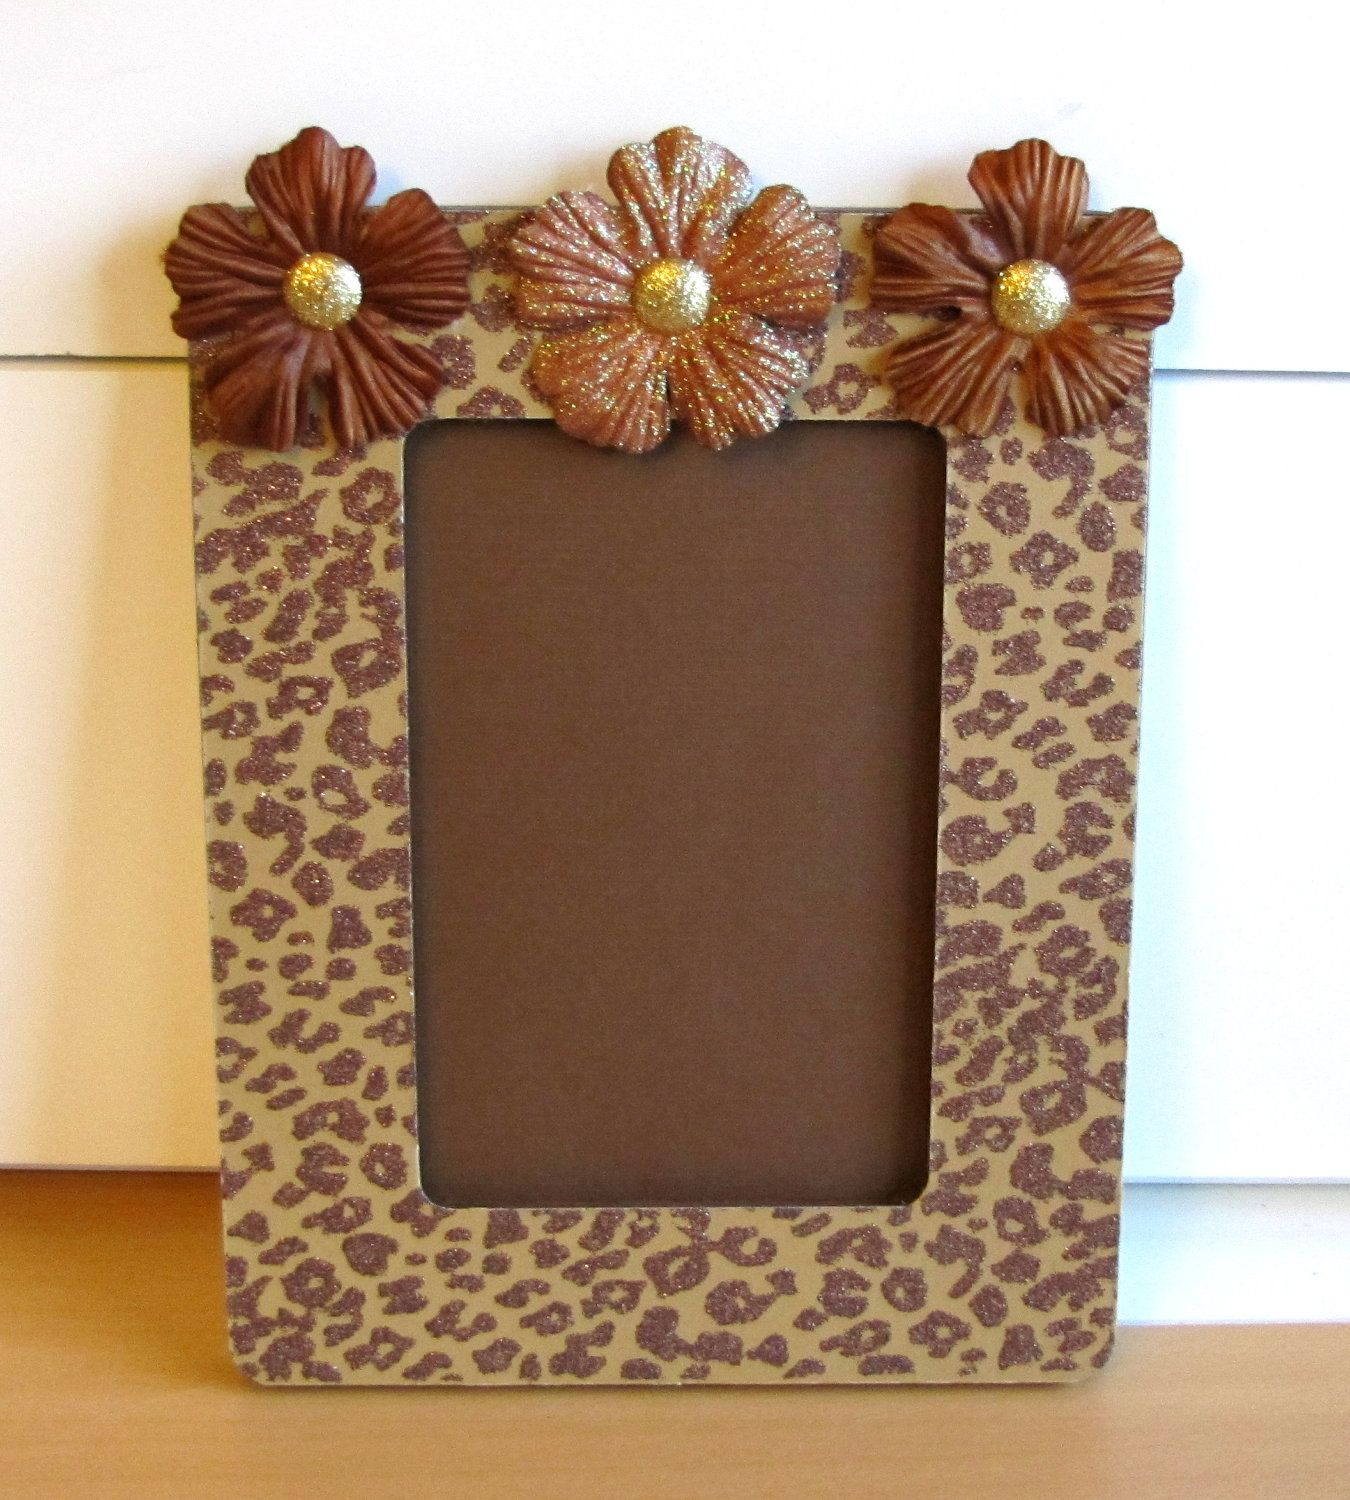 Cheetah Print Altered Picture Frame - idea for gift | I want to make ...